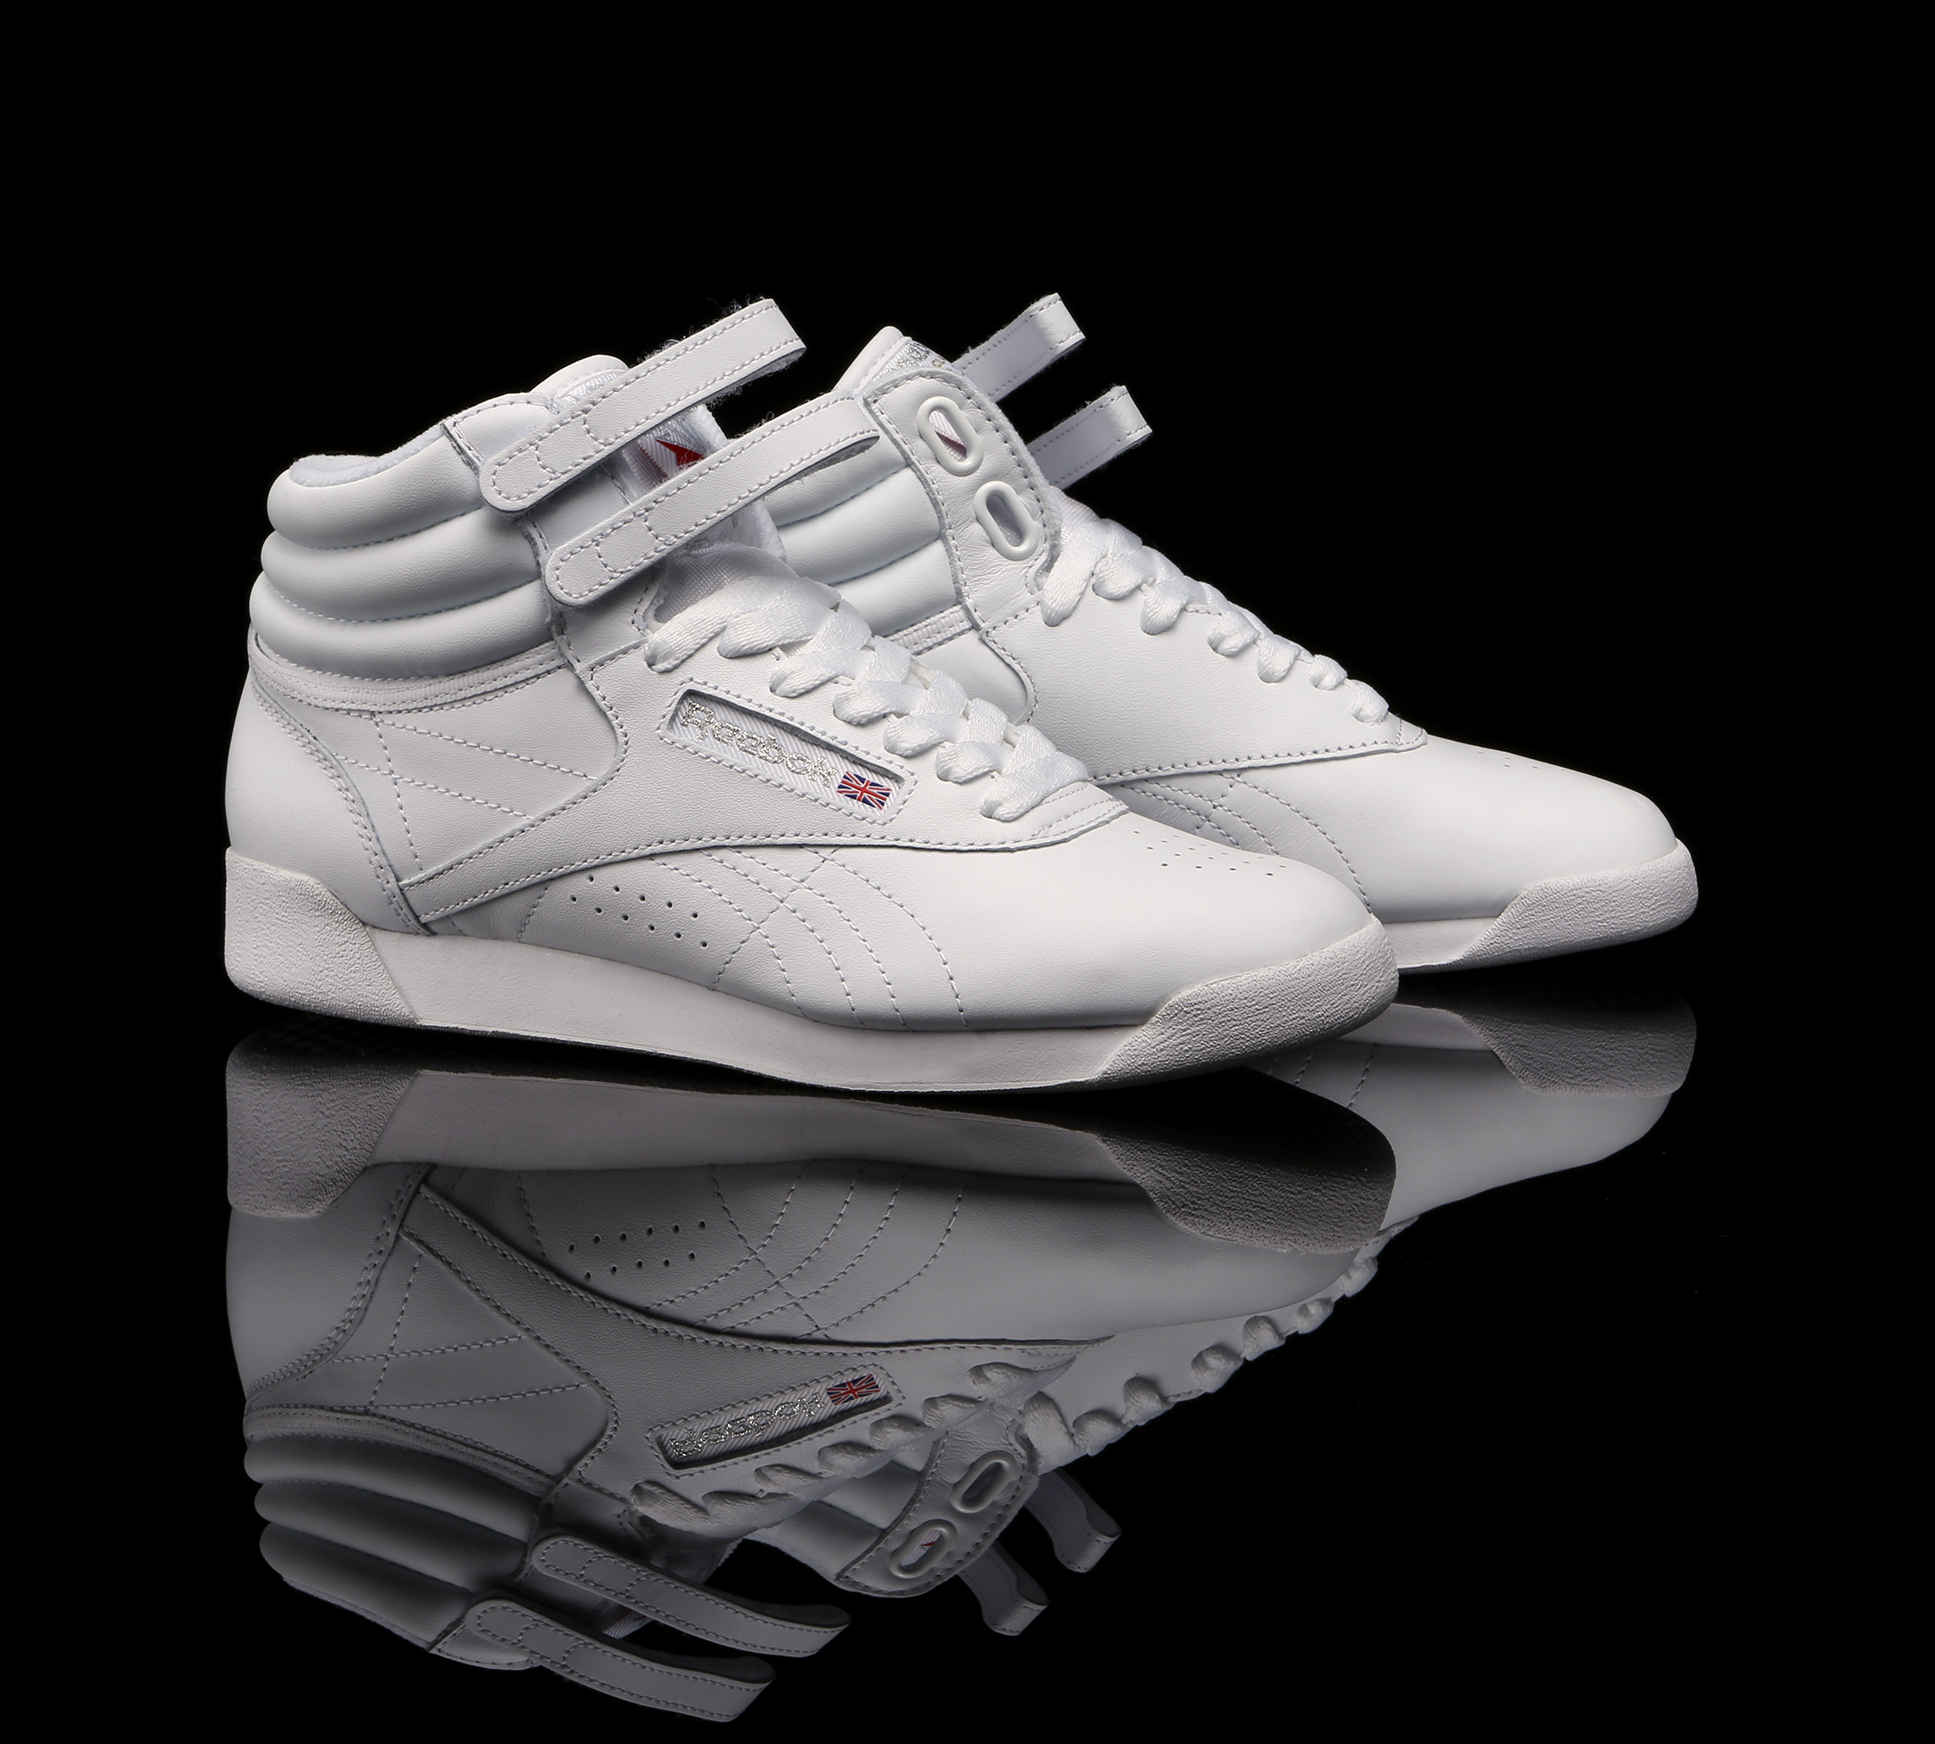 65b90e2ca4 Reebok Freestyle - Wikipedia